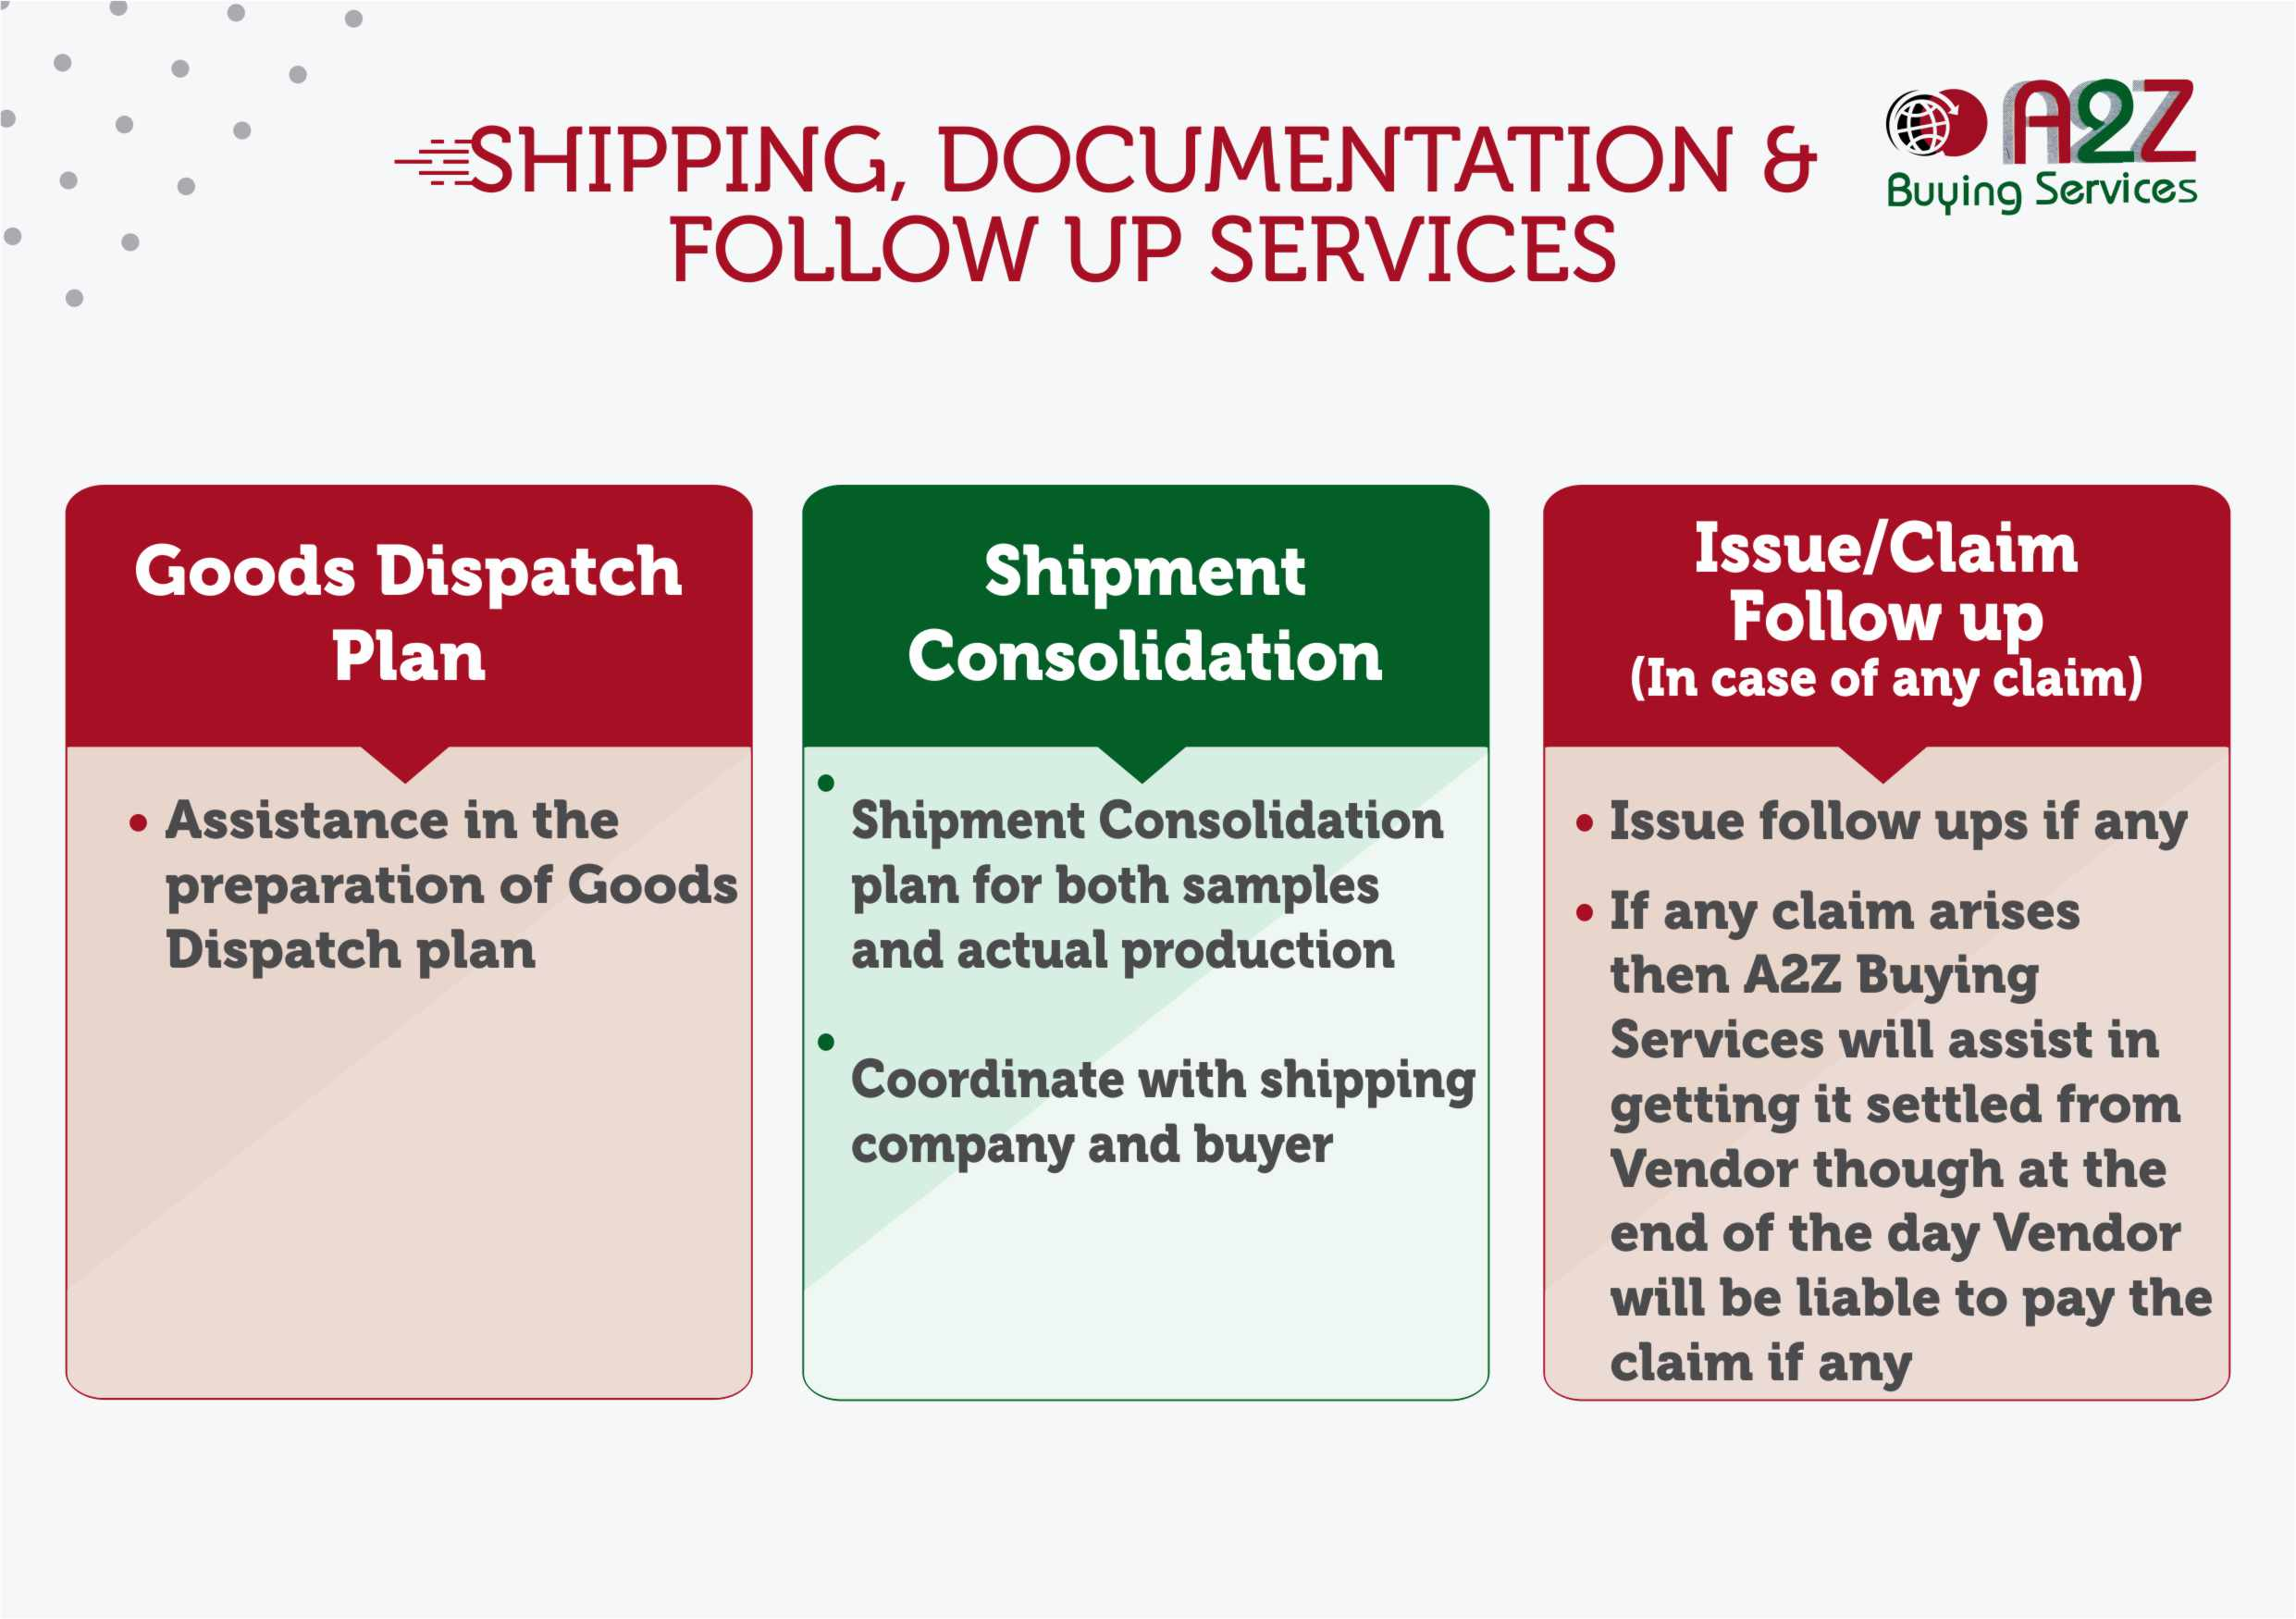 A2Z Buying Services